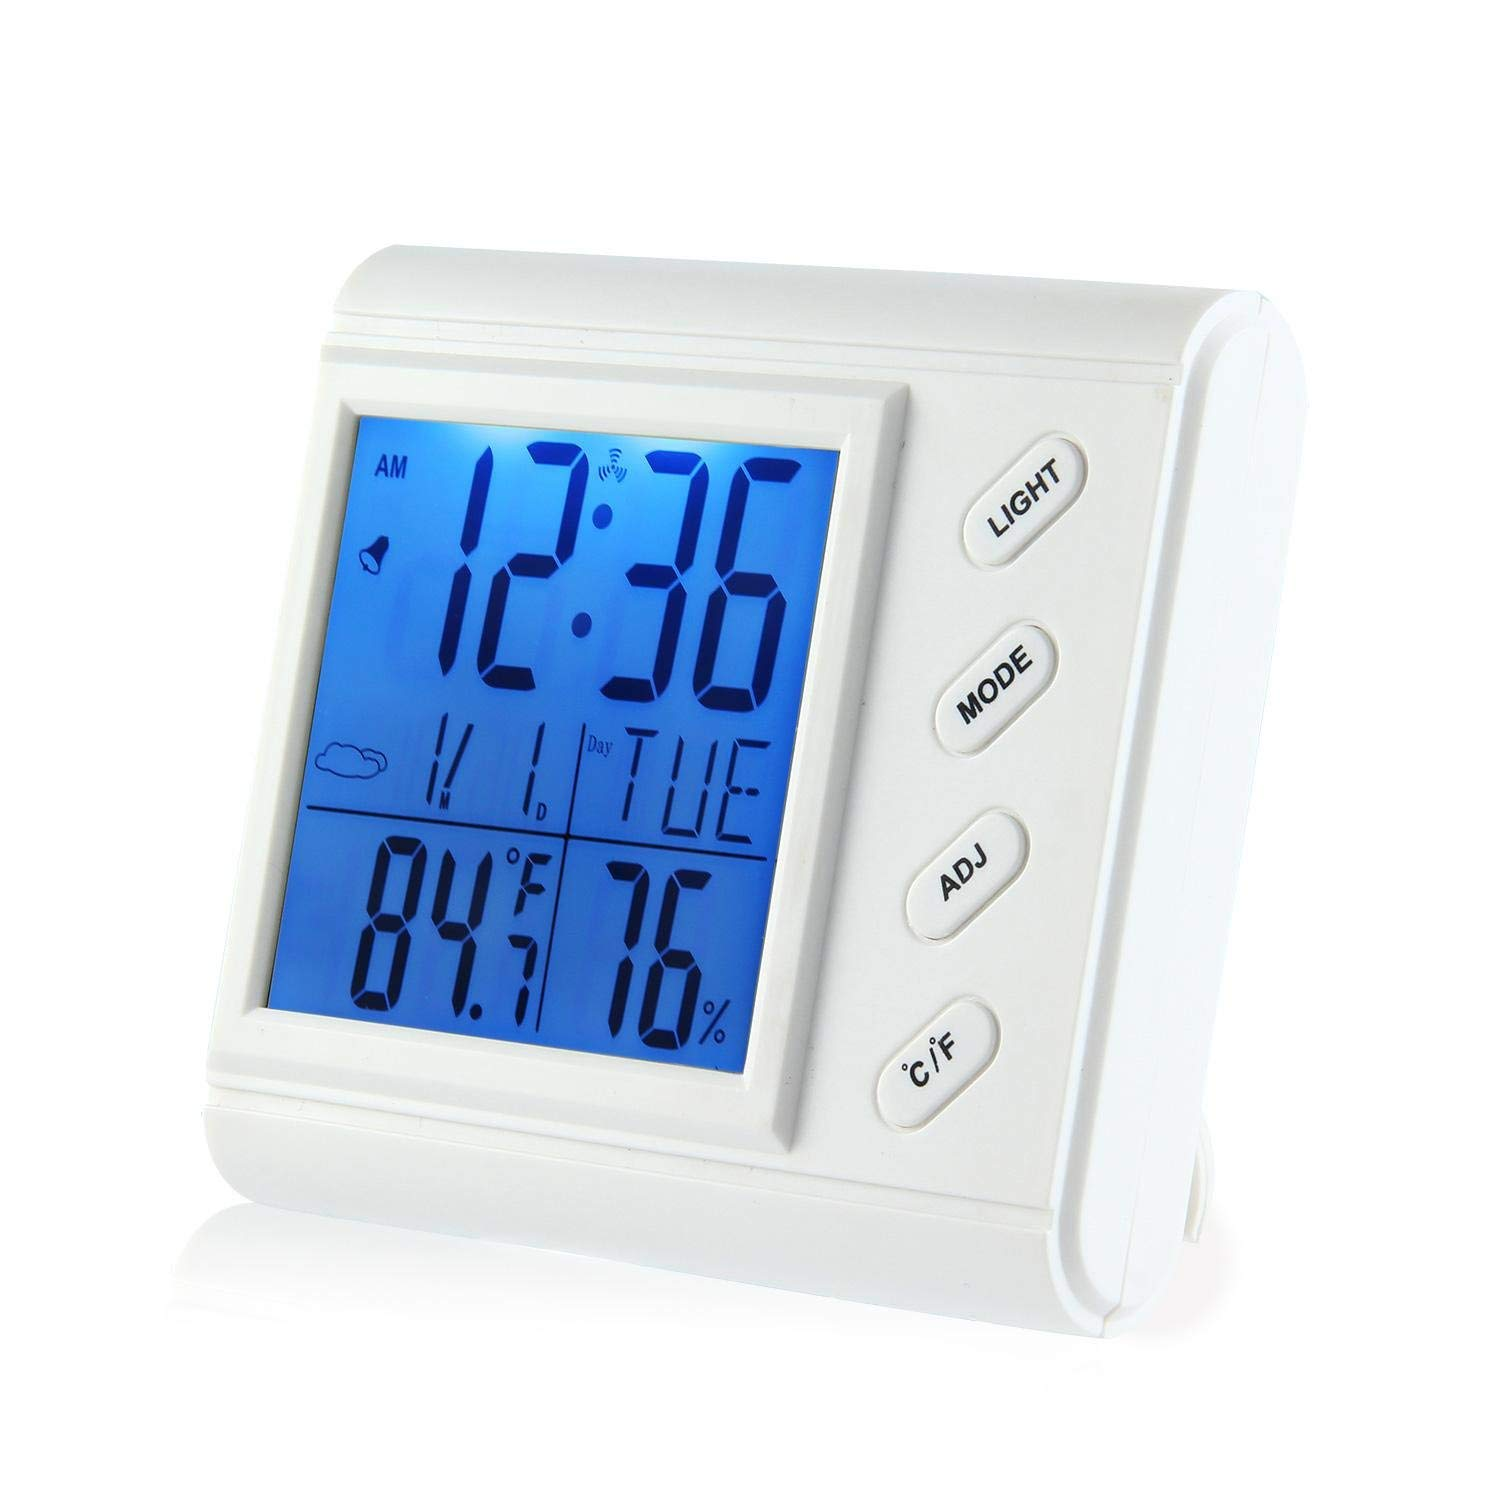 Teepao Temperature Humidity Gauge, Indoor Thermometer Hygrometer with Digital Alarm Clock, Backlit Accurate Monitor Clear Reading, Min/Max Records, °C/°F Switch, Calendar, Time Display - White